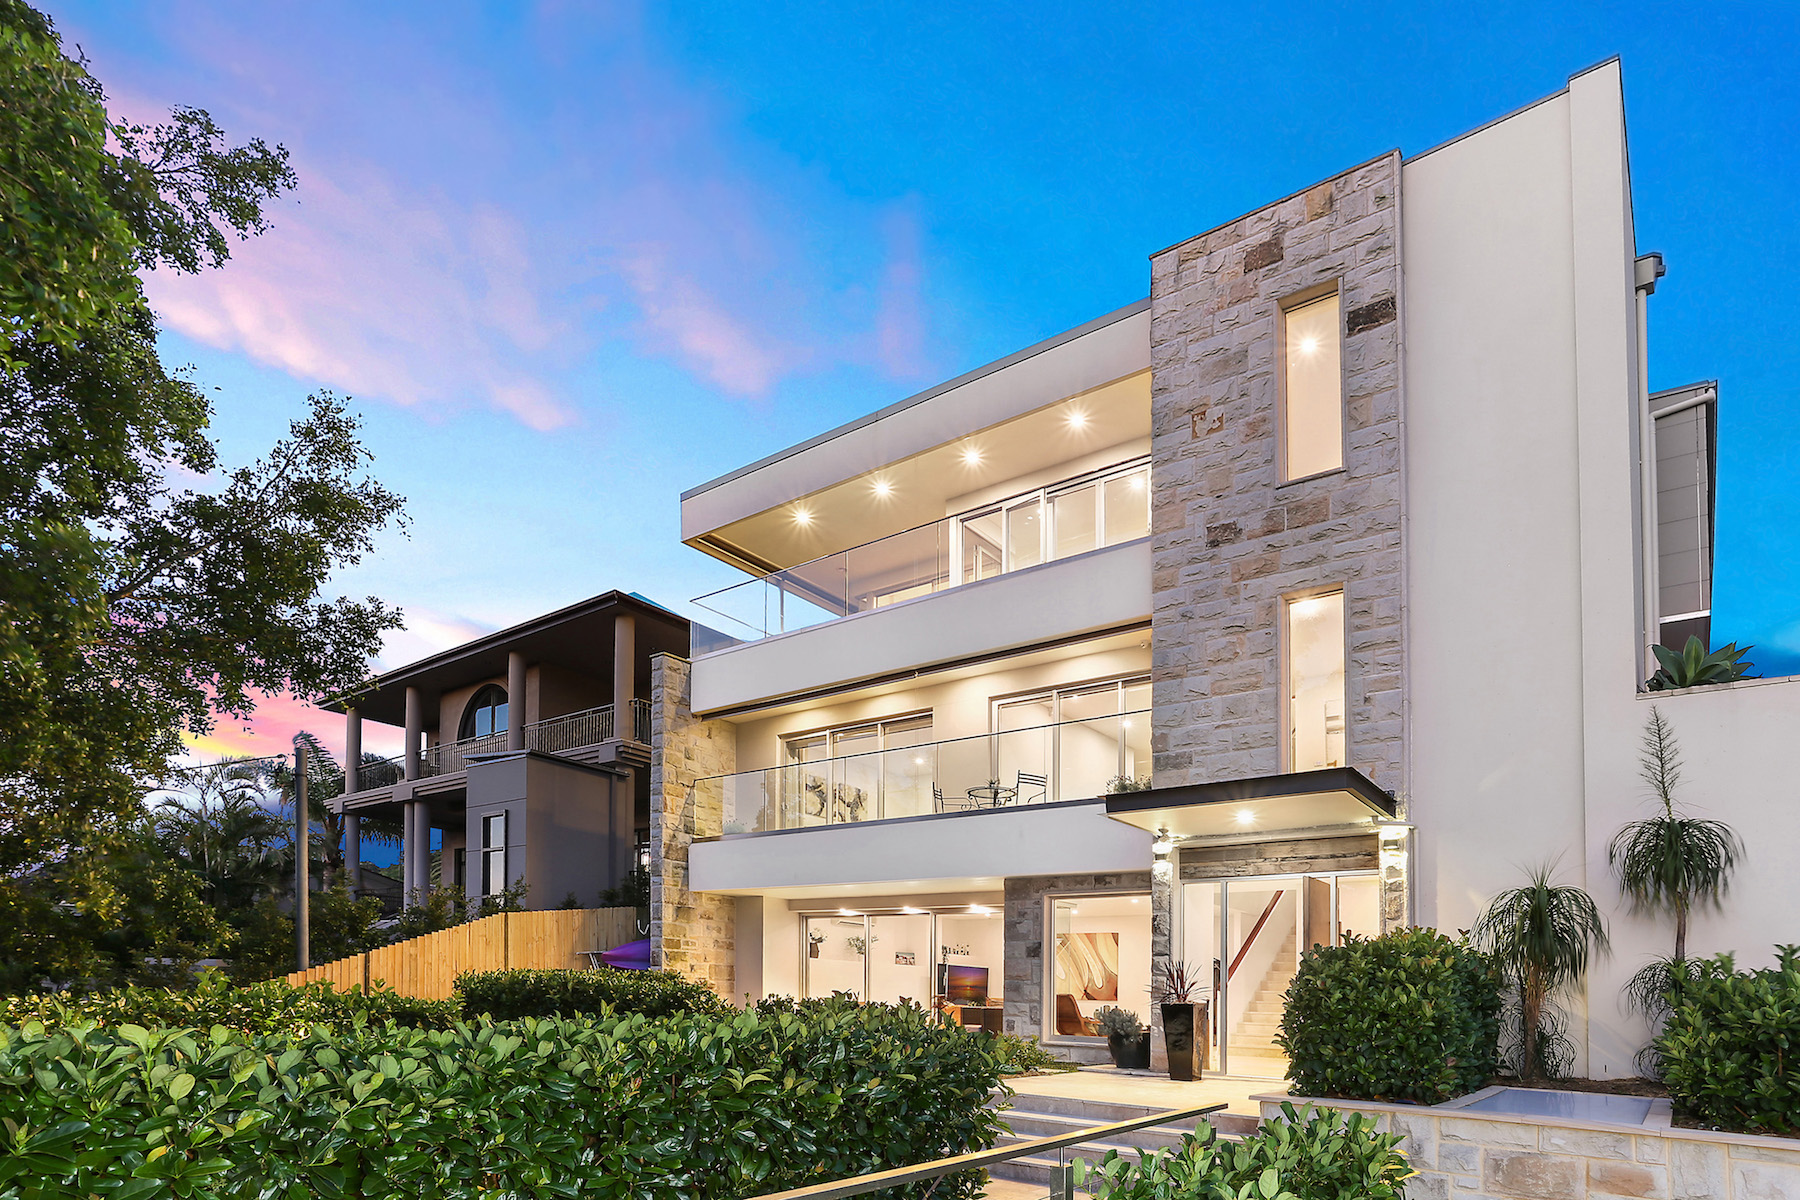 Other Residential for Sale at 25 Bulkara Road, Bellevue Hill 25 Bulkara Road Sydney, New South Wales 2023 Australia